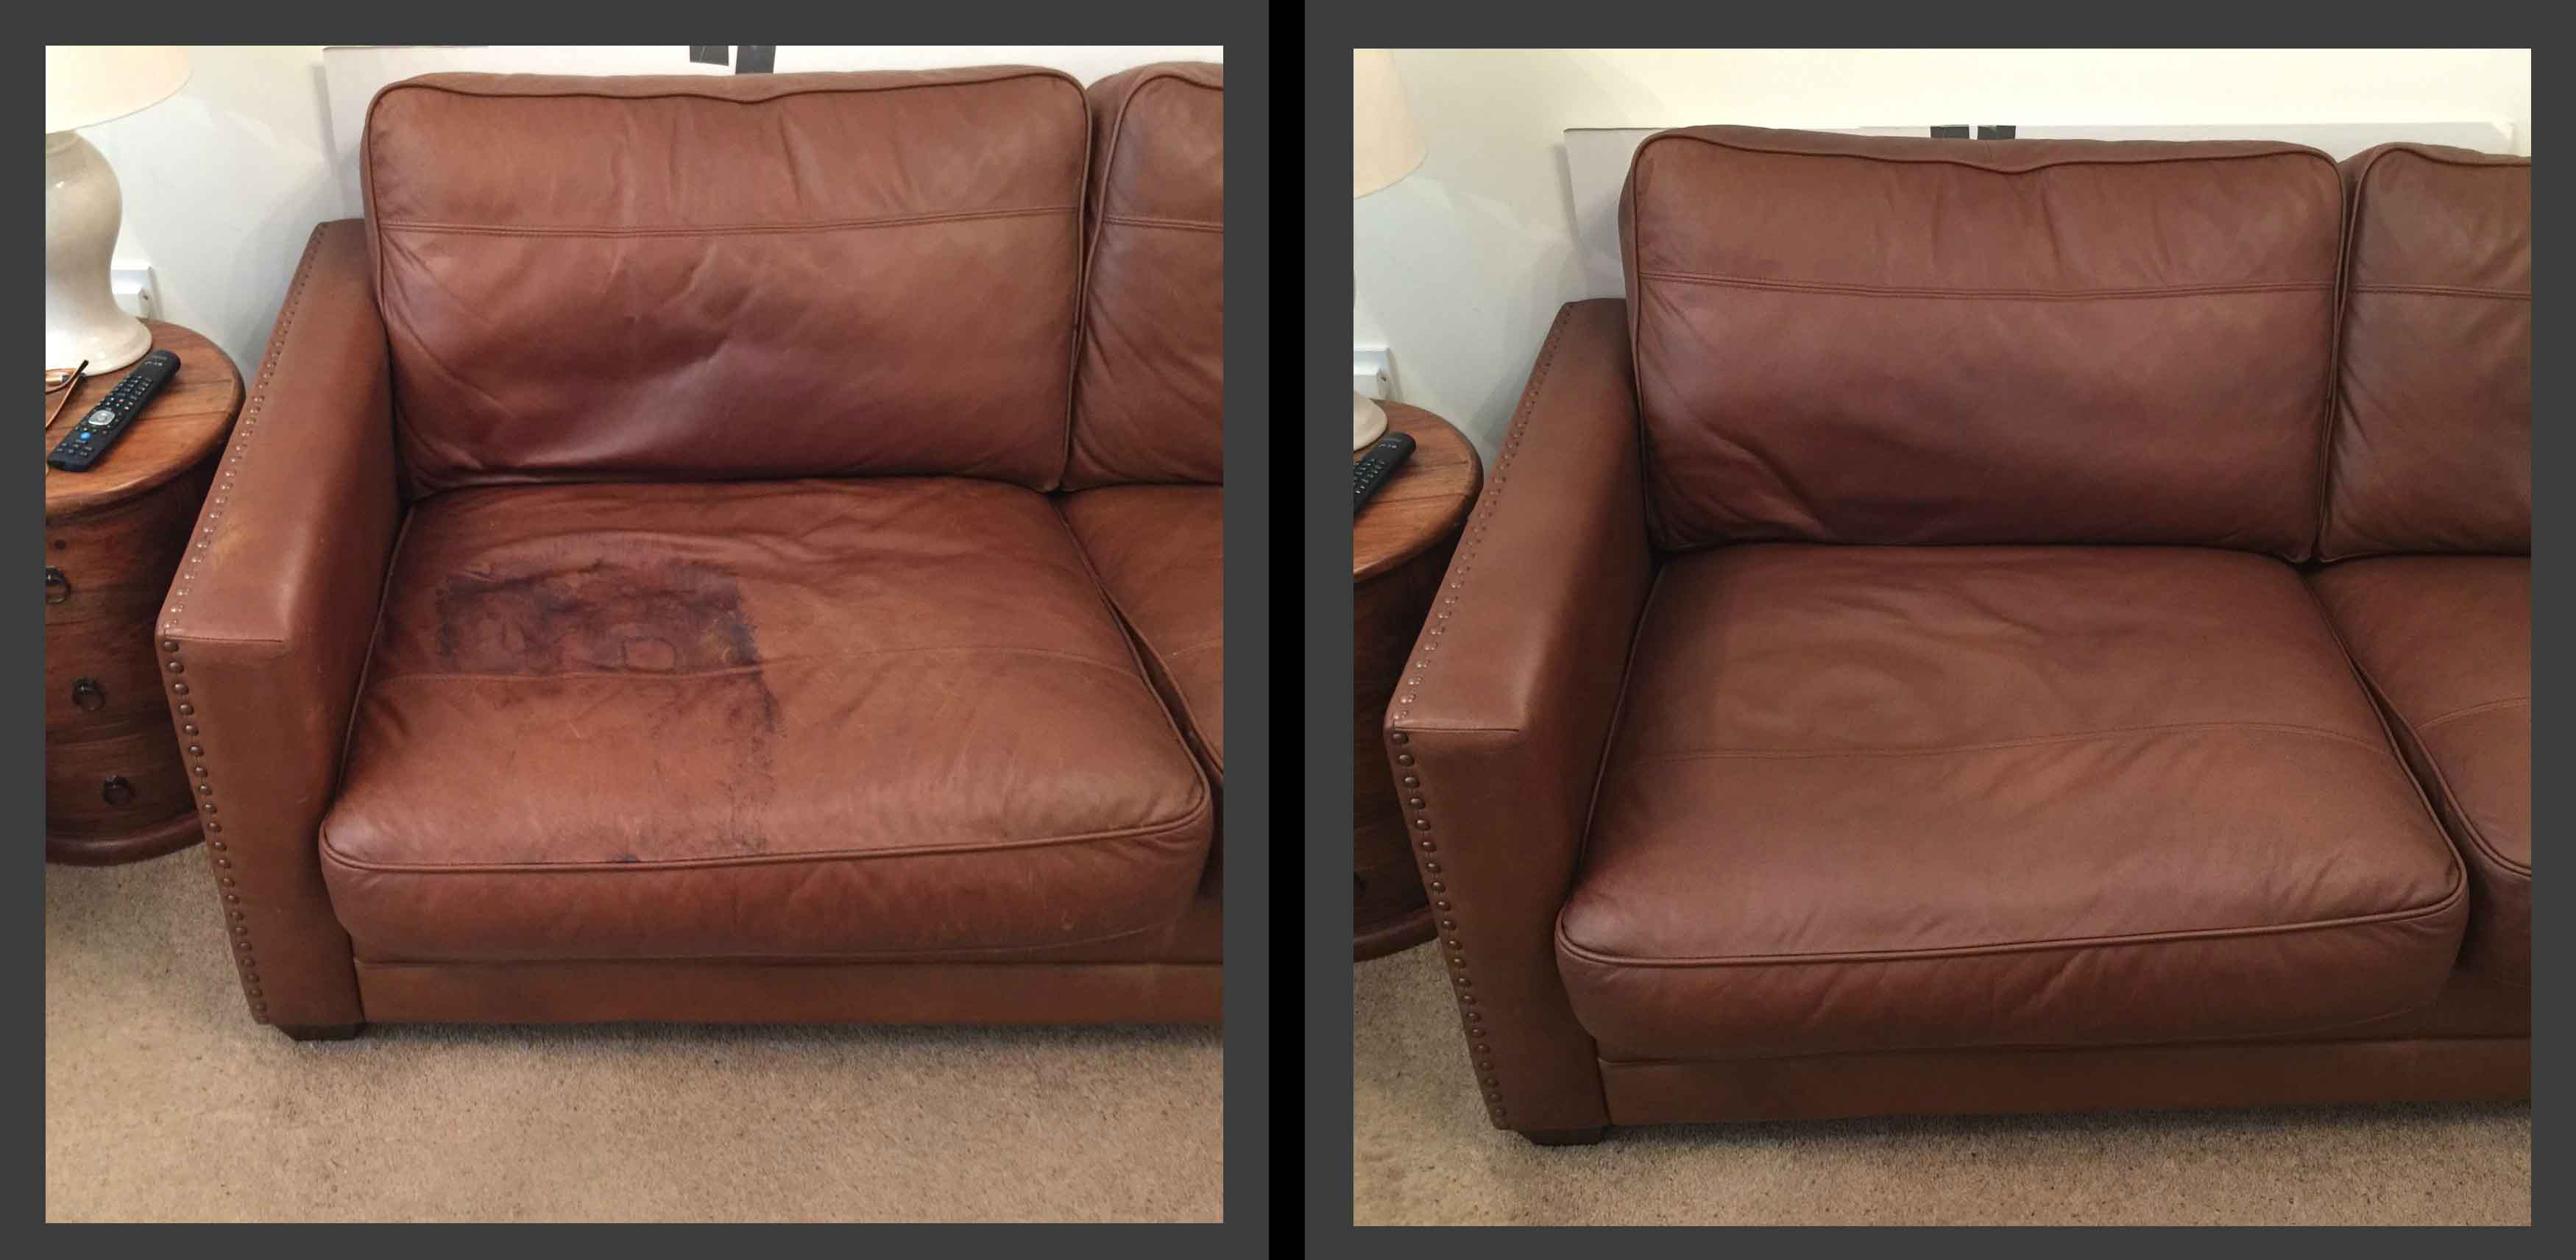 3 simple ways to repair scratches on leather furniture How to treat leather furniture